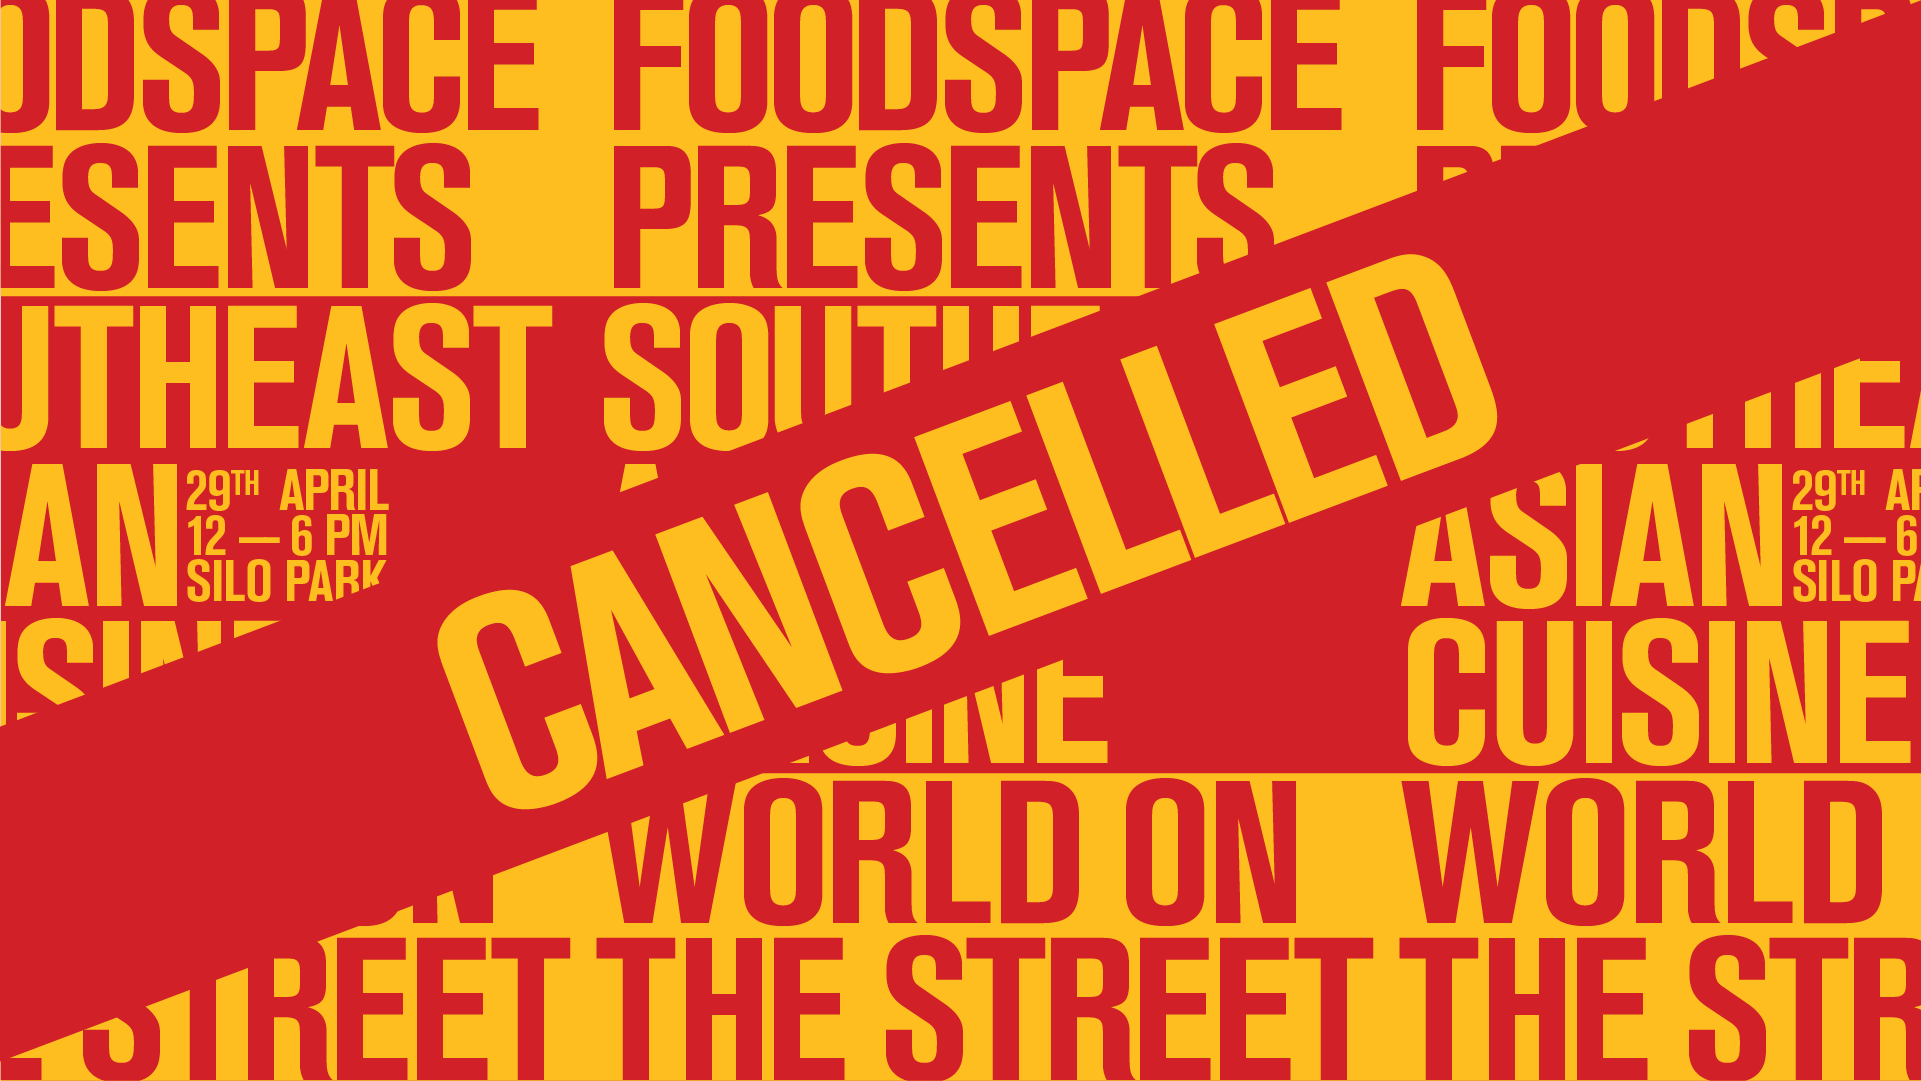 Foodspace_SEA_Cancelled_FB (1).png